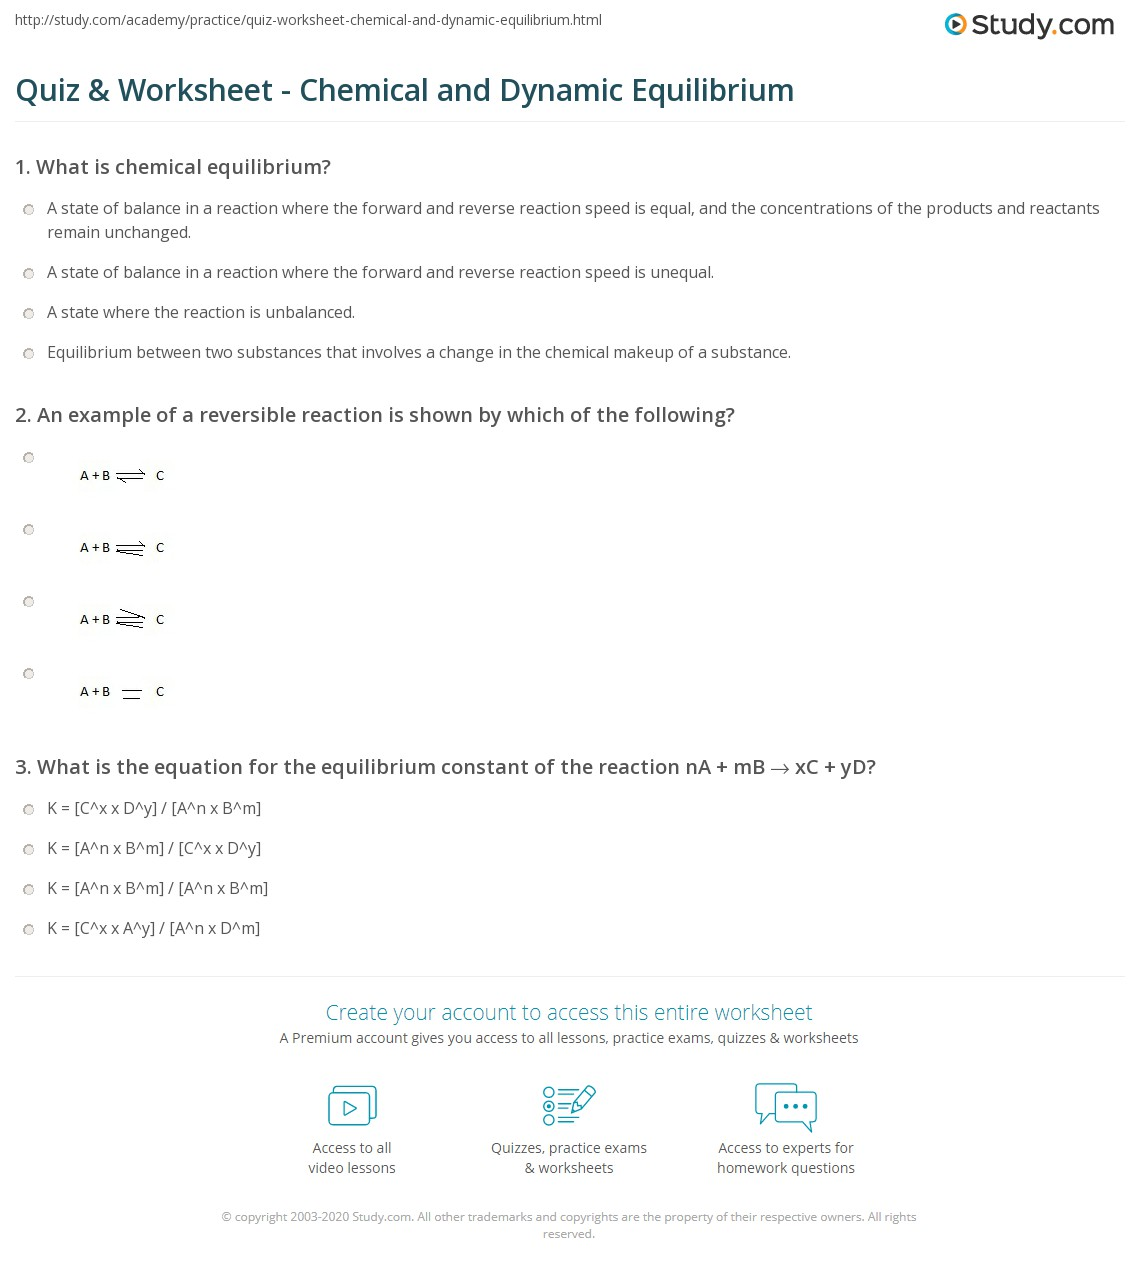 Print Equilibrium: Chemical and Dynamic Worksheet